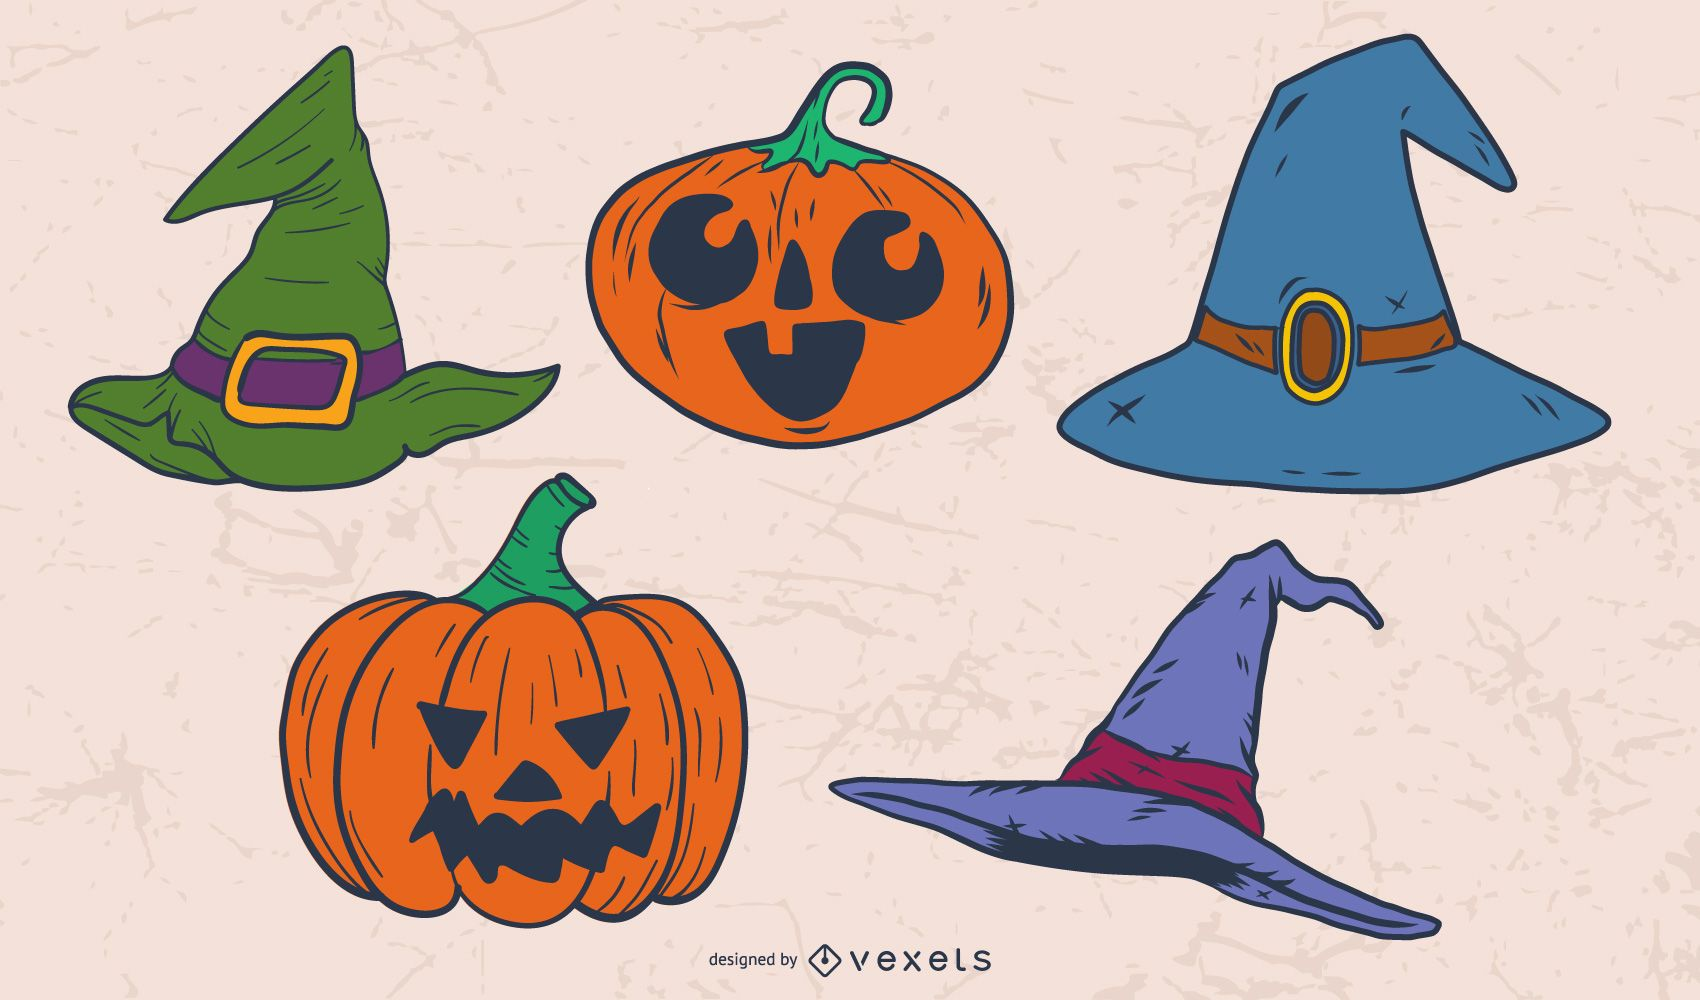 Witch Hats and Pumpkins for Halloween